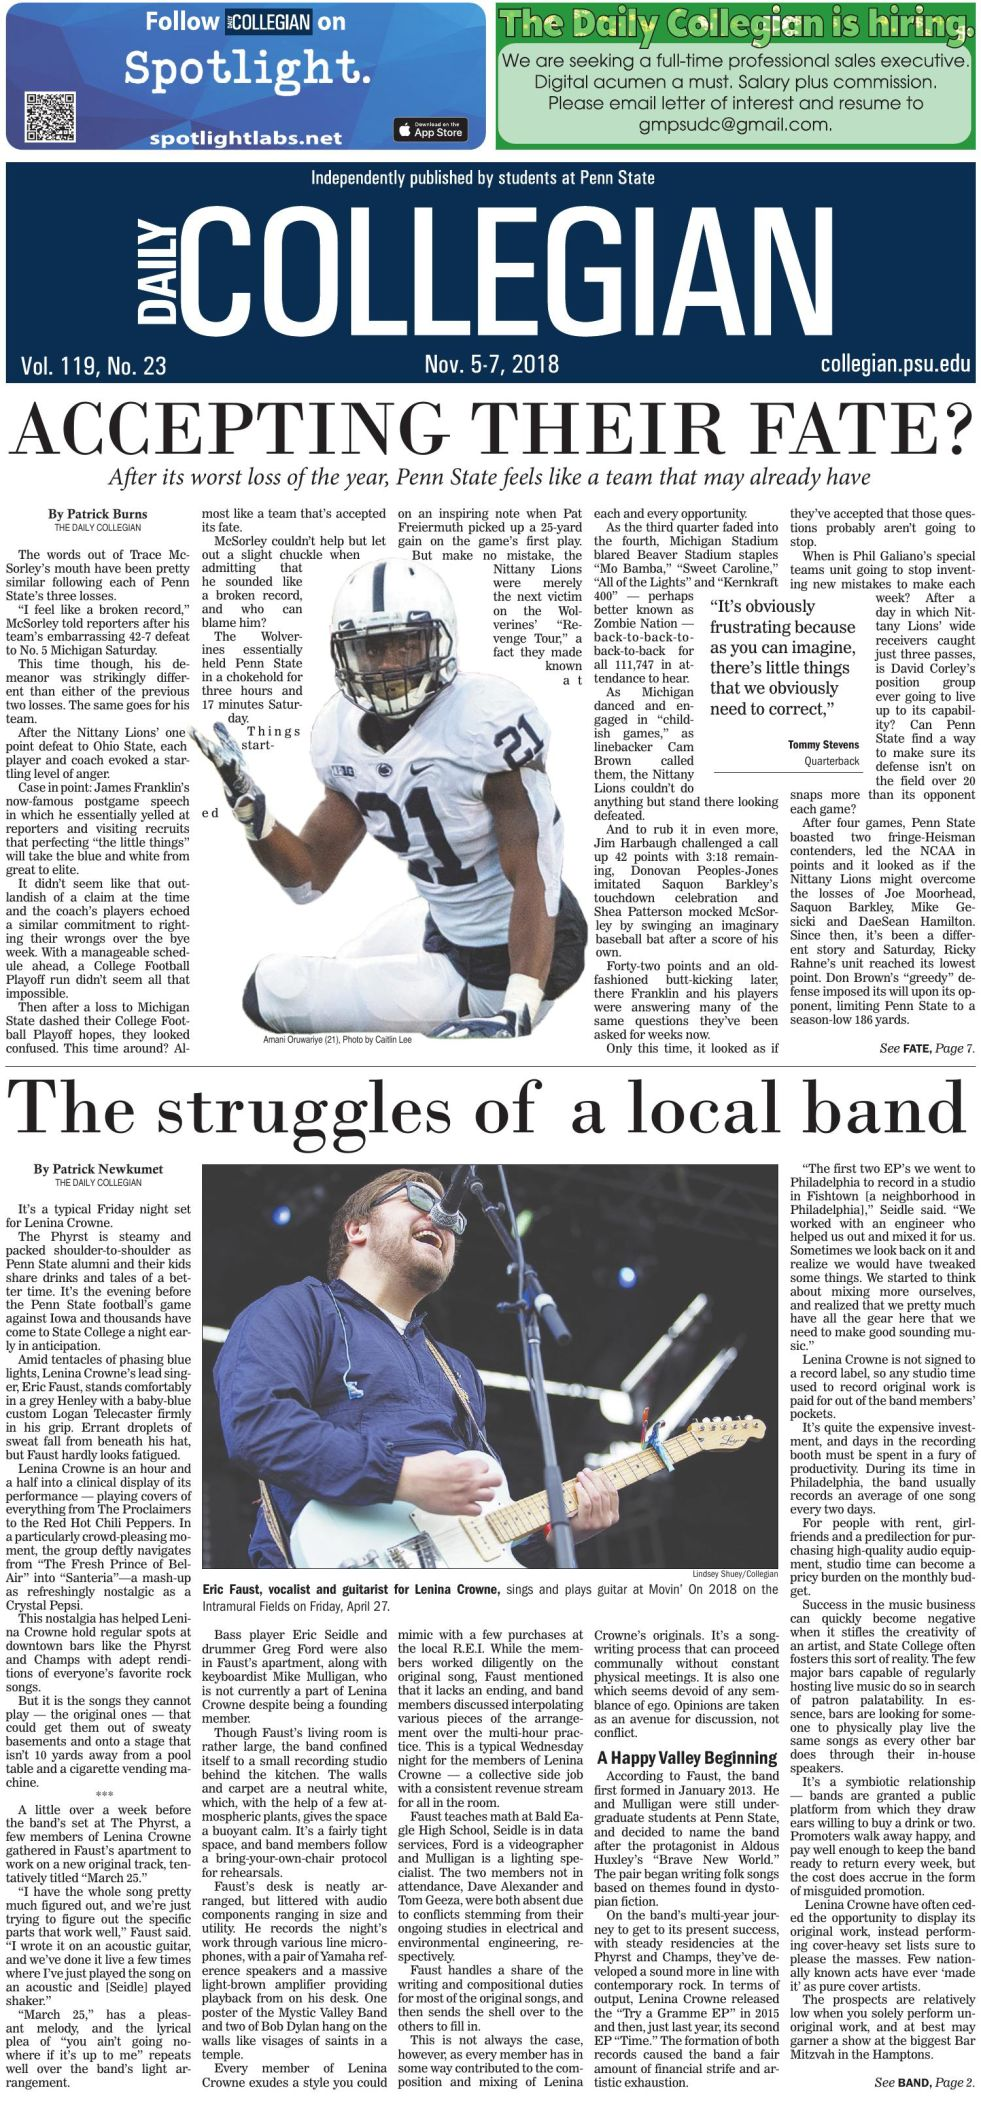 The Daily Collegian for Nov. 5, 2018